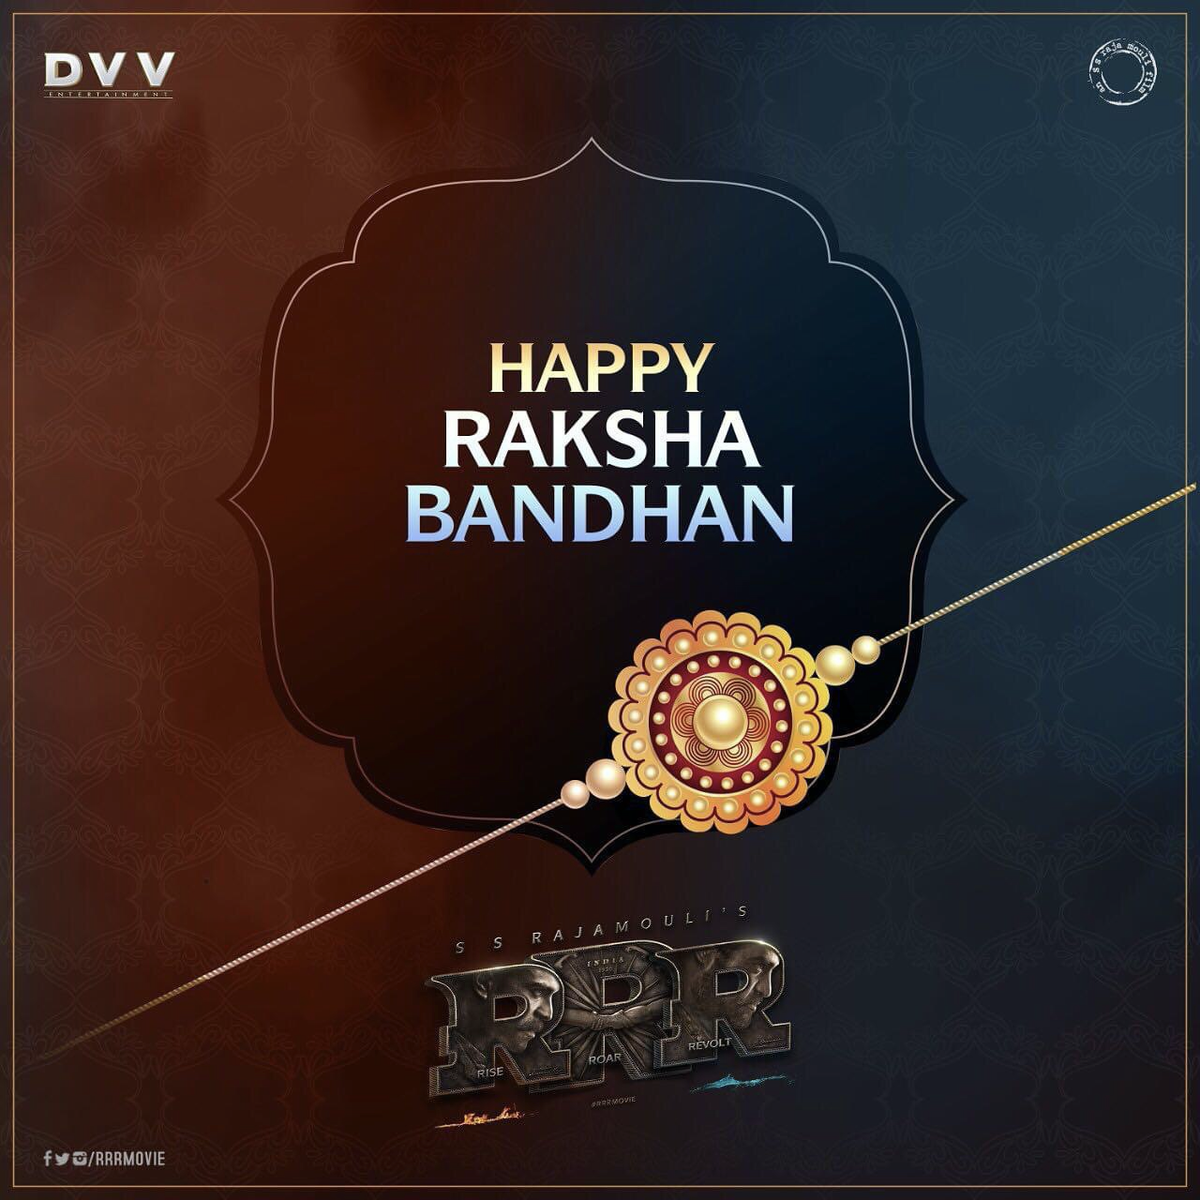 On this #RakshaBandhan, let's pledge to salute all the frontline workers for protecting us just like how our own siblings do. Hope we win against this Covid very soon and get back to our works like before 💖 #HappyRakshaBandhan